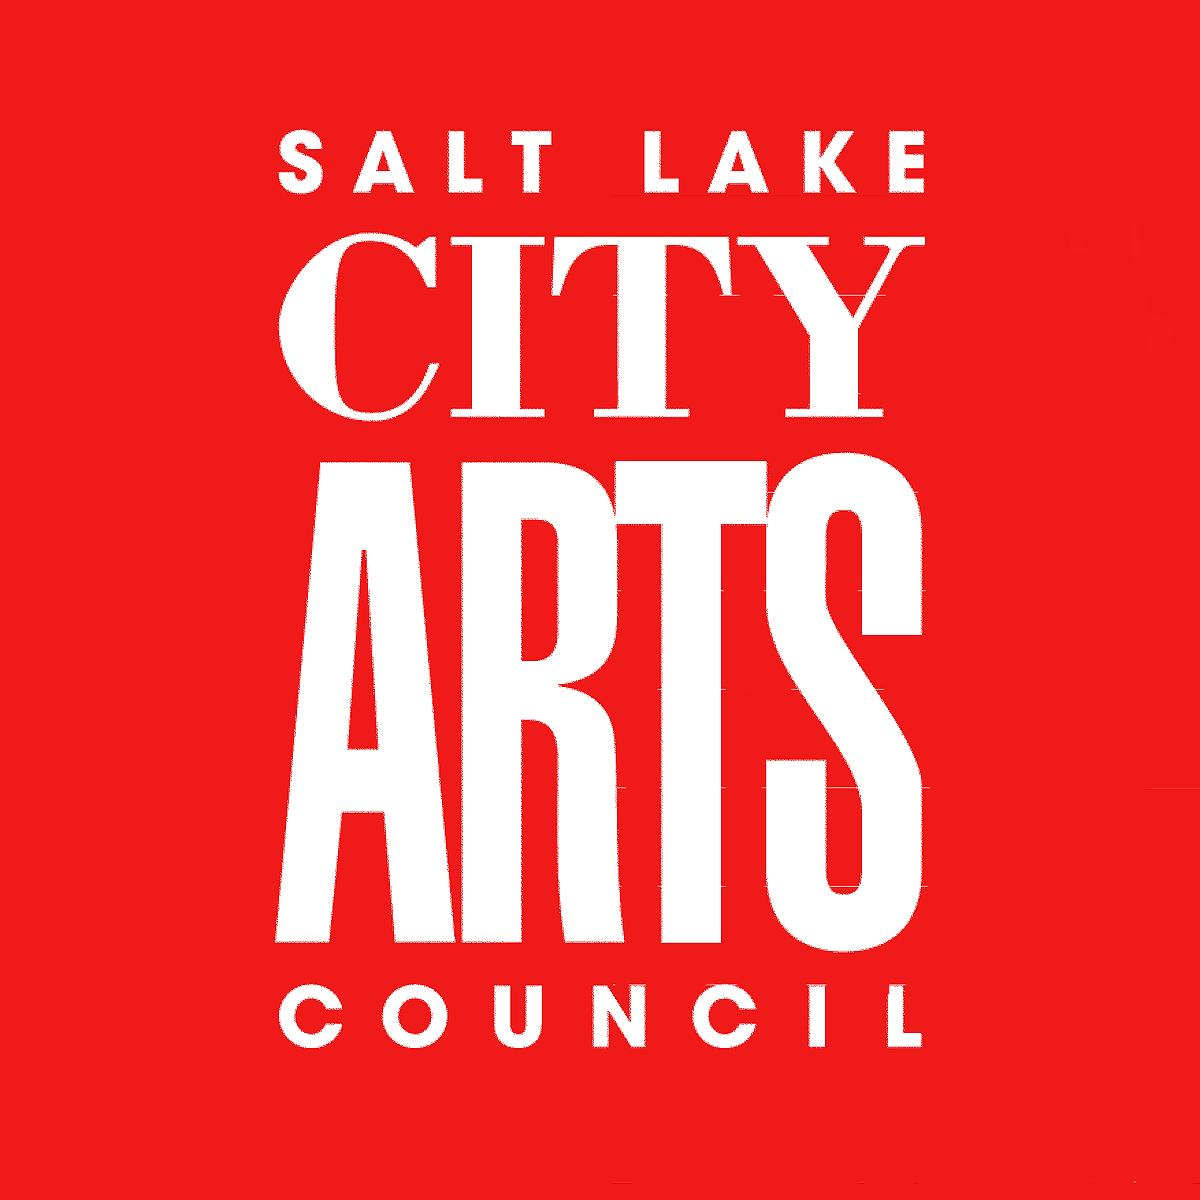 SLC20ARTS20COUNCIL20RED20LOGO20JPG300